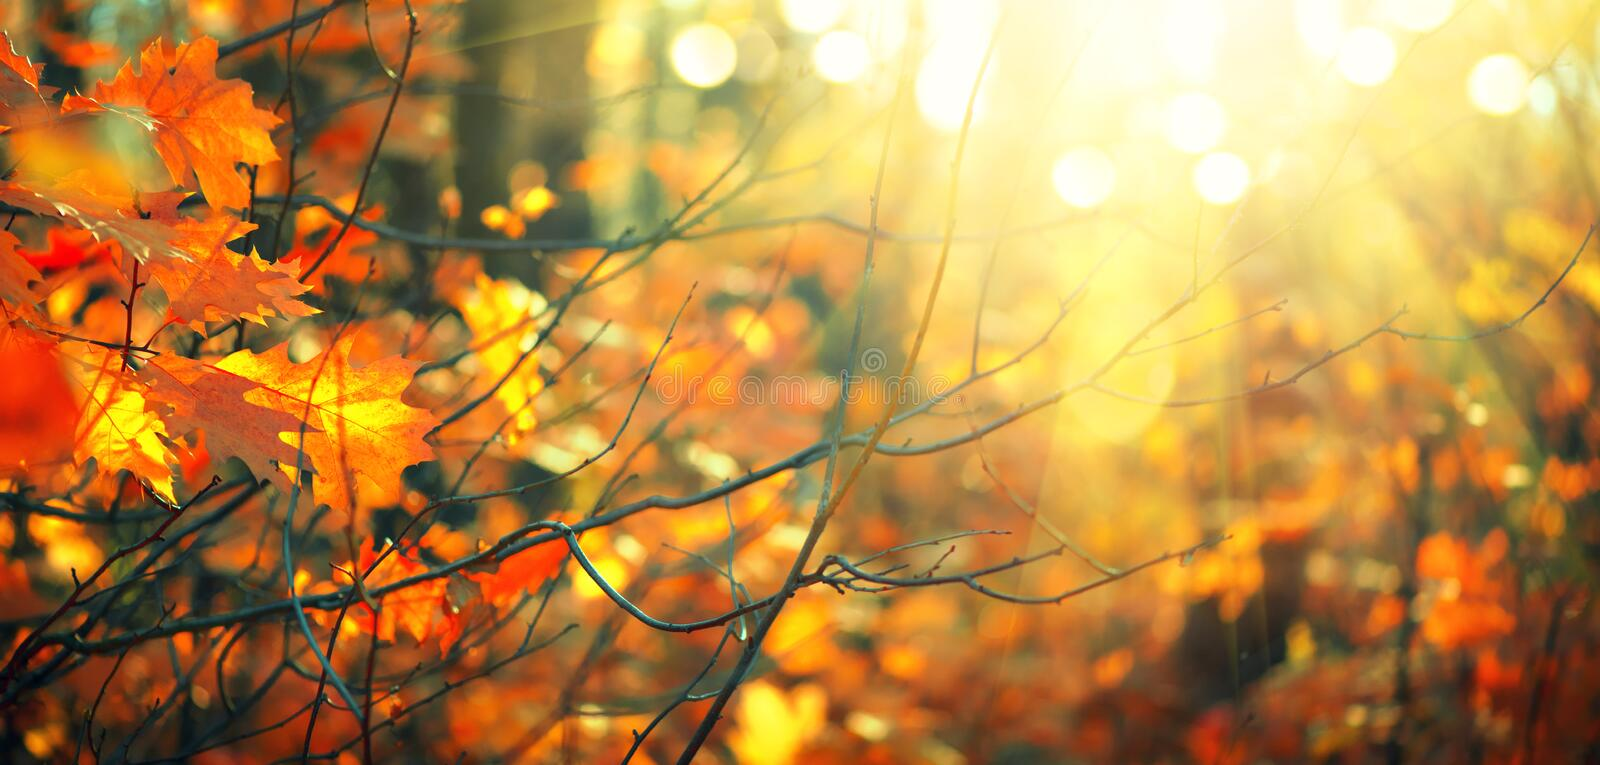 Autumn colorful bright leaves swinging in a tree in autumnal park. Fall colorful background. Beautiful nature scene royalty free stock photos